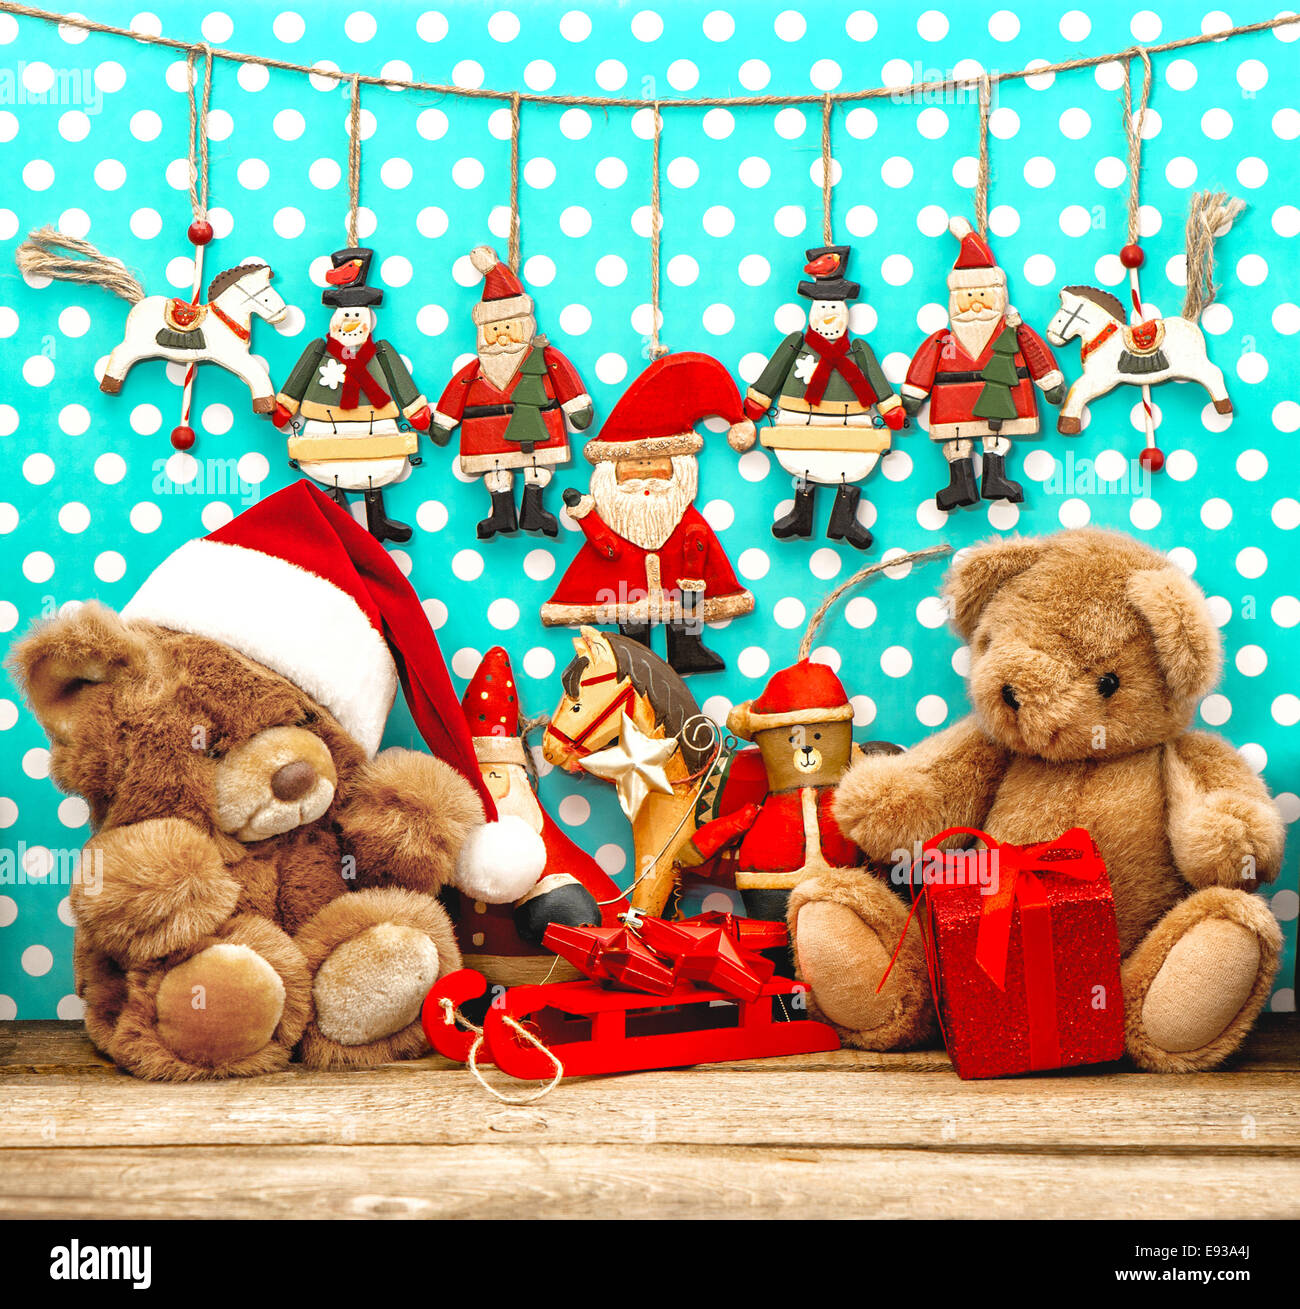 christmas decorations with vintage toys and teddy bear nostalgic holidays background